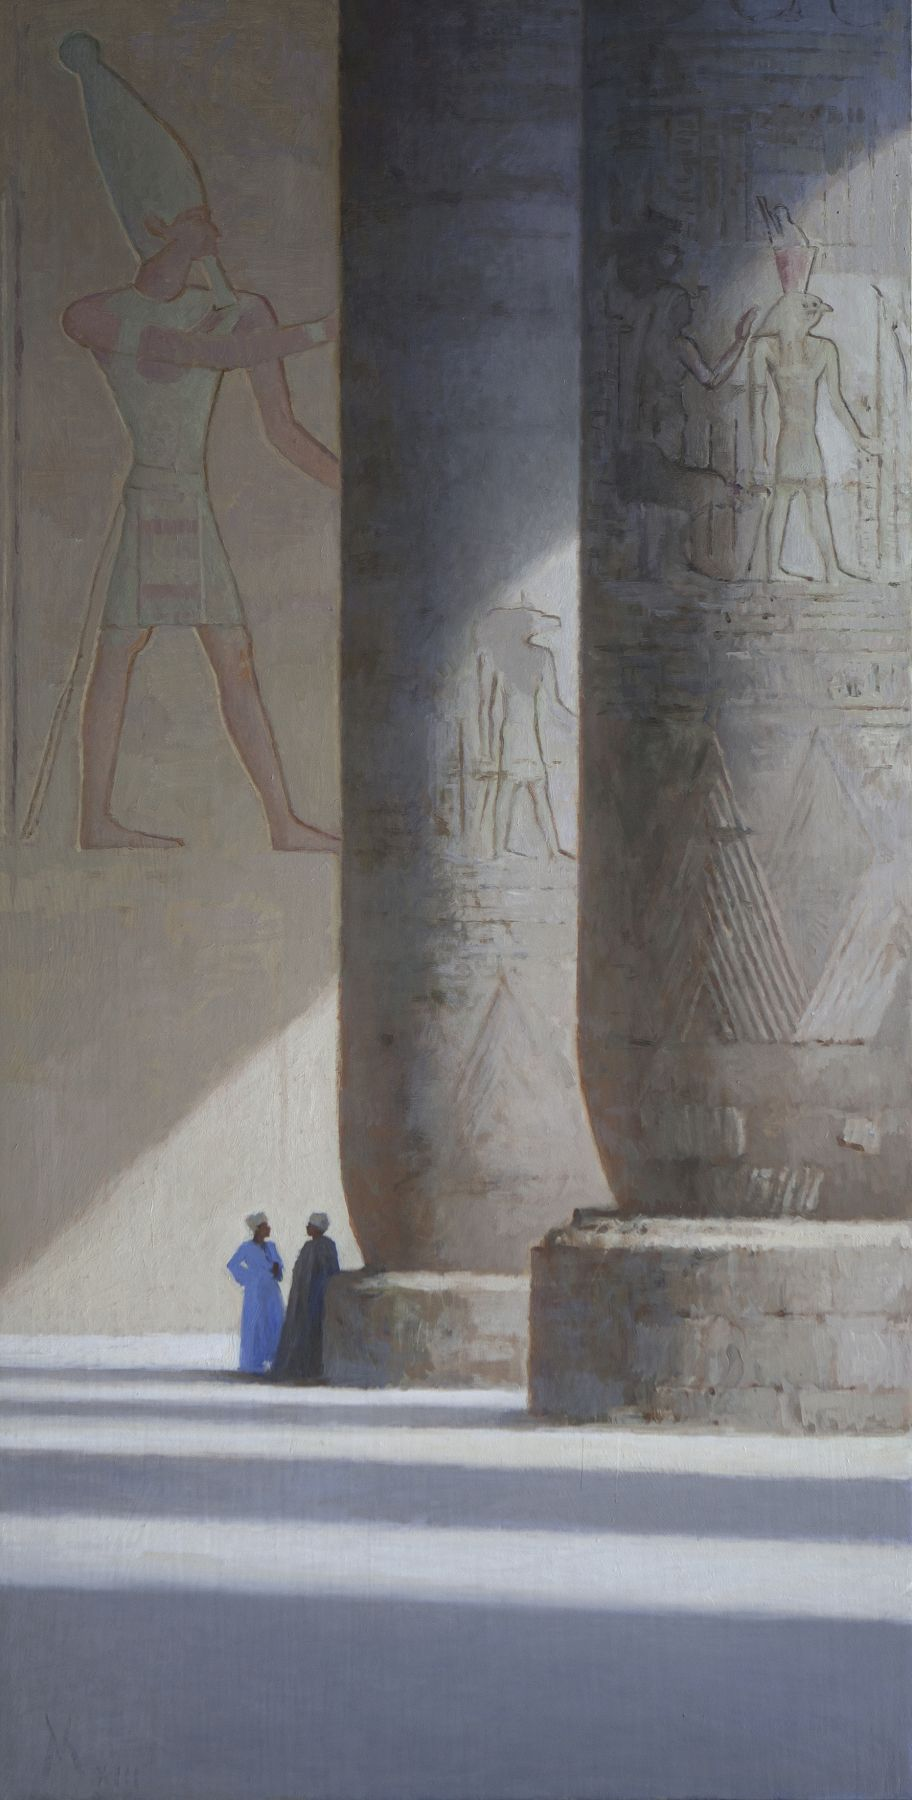 guillermo munoz vera, Sunny Day at Edfu Temple, 2013, oil on canvas mounted on panel, 39 3/8 x 19 5/8 inches